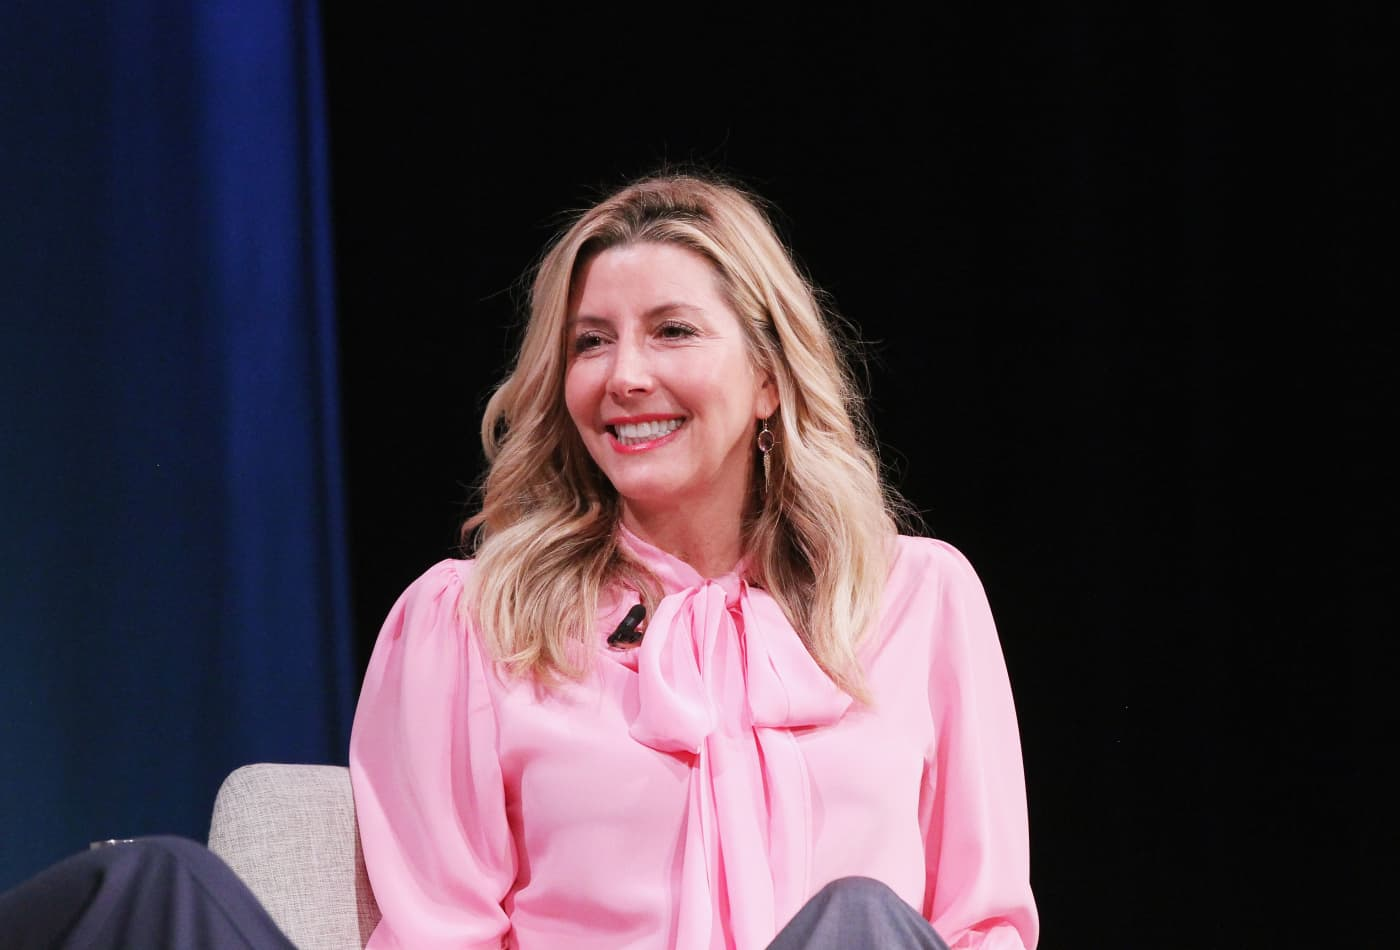 Why Spanx founder Sara Blakely hid her billion-dollar business idea from friends and family for a year